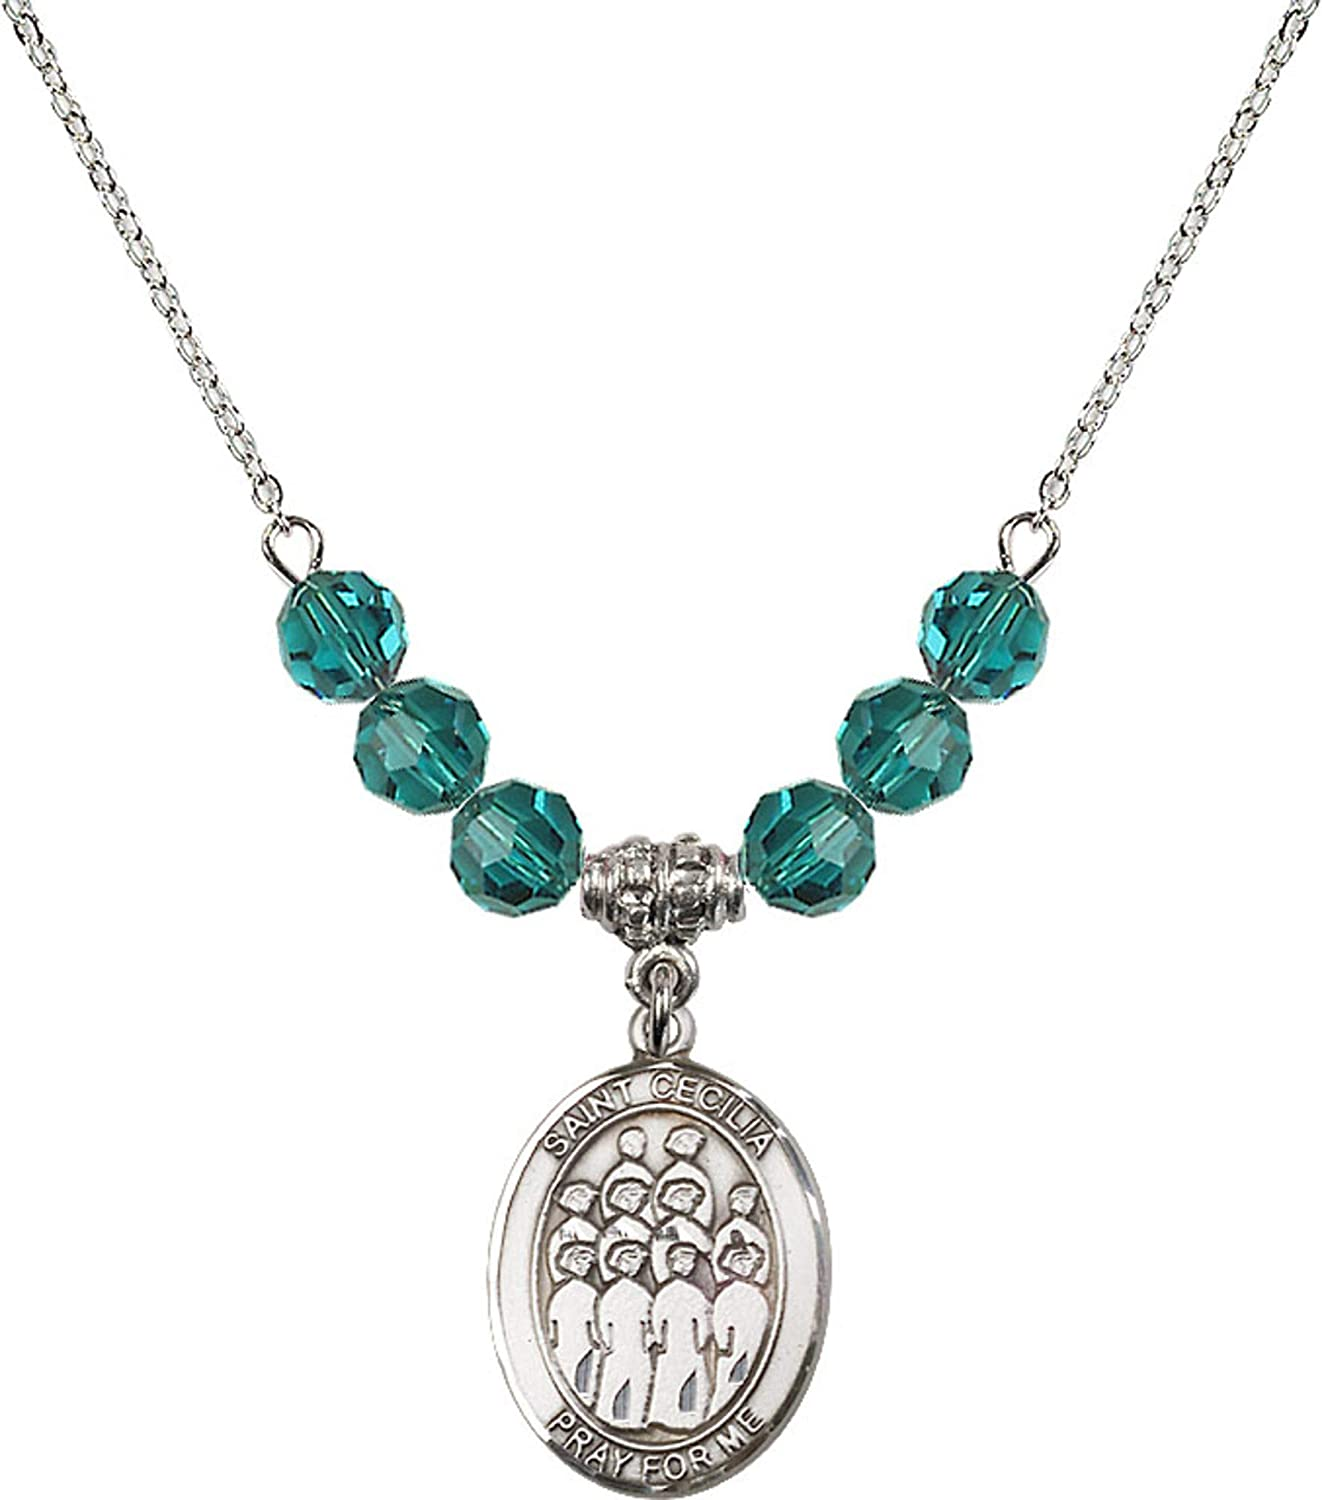 Bonyak Jewelry 18 Inch Rhodium Plated Necklace w// 6mm Blue December Birth Month Stone Beads and Saint Cecilia//Choir Charm